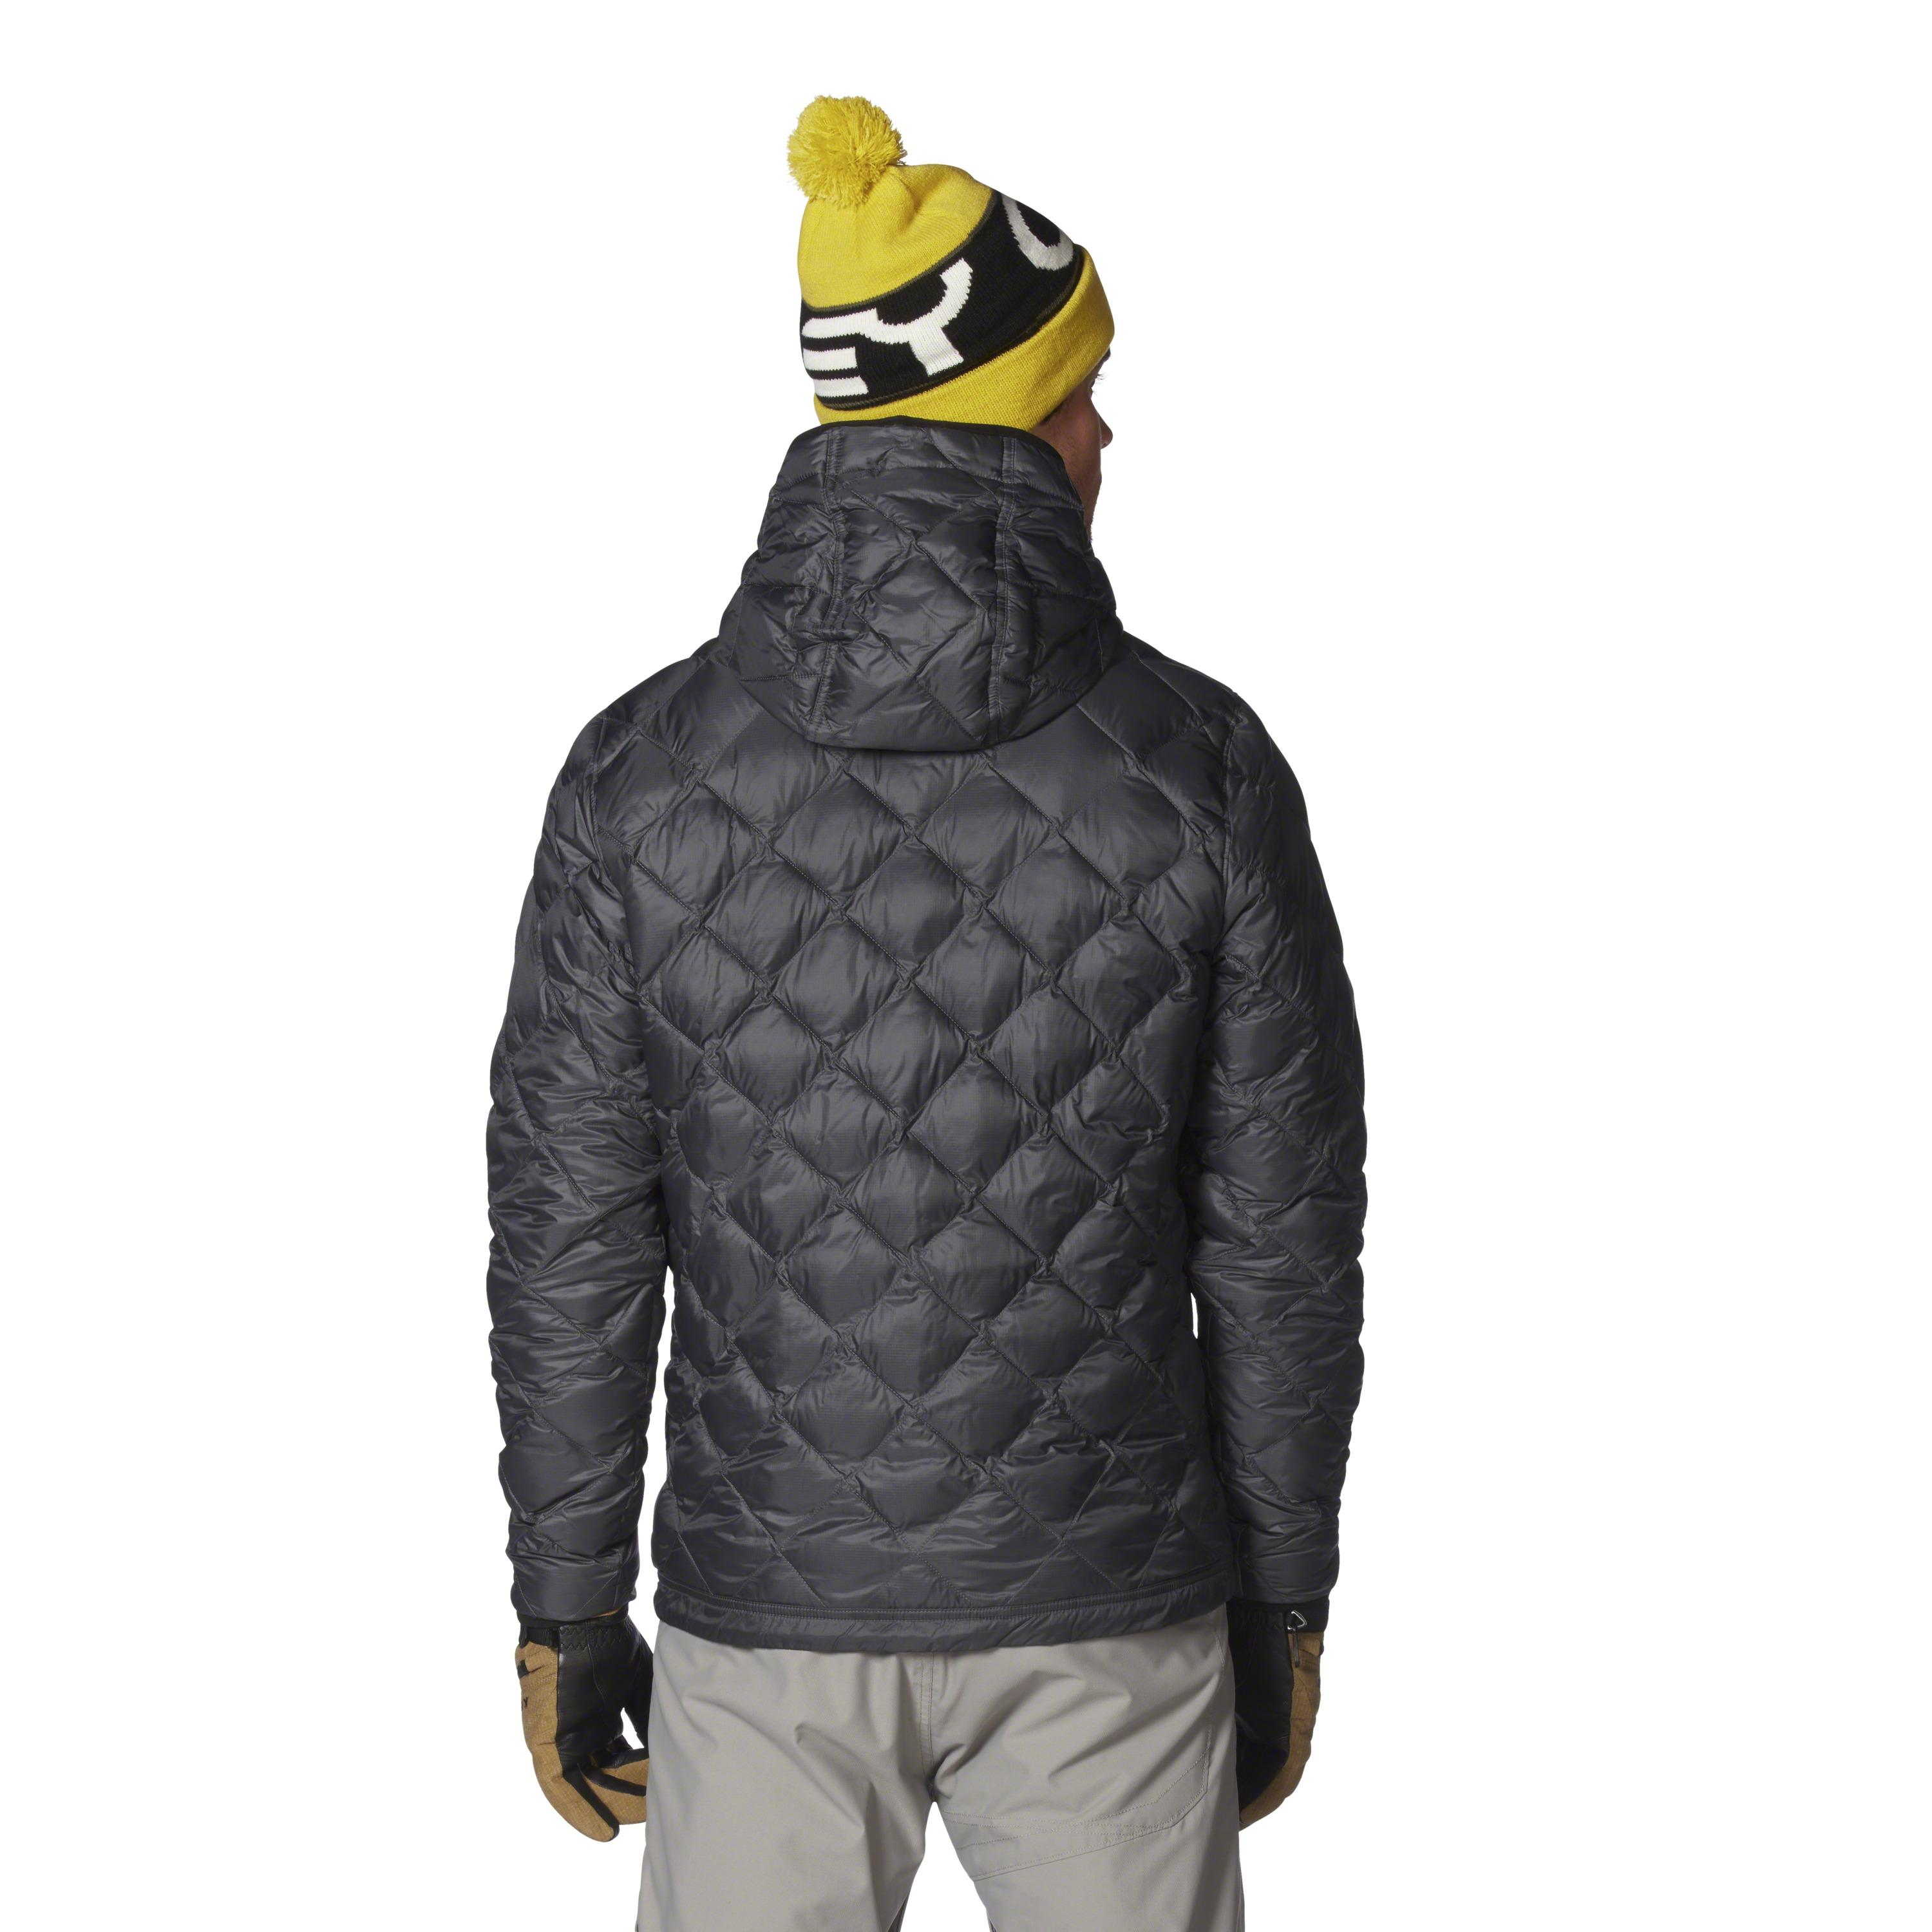 Oakley Synthetic Citrus Chambers Jacket in Yellow for Men